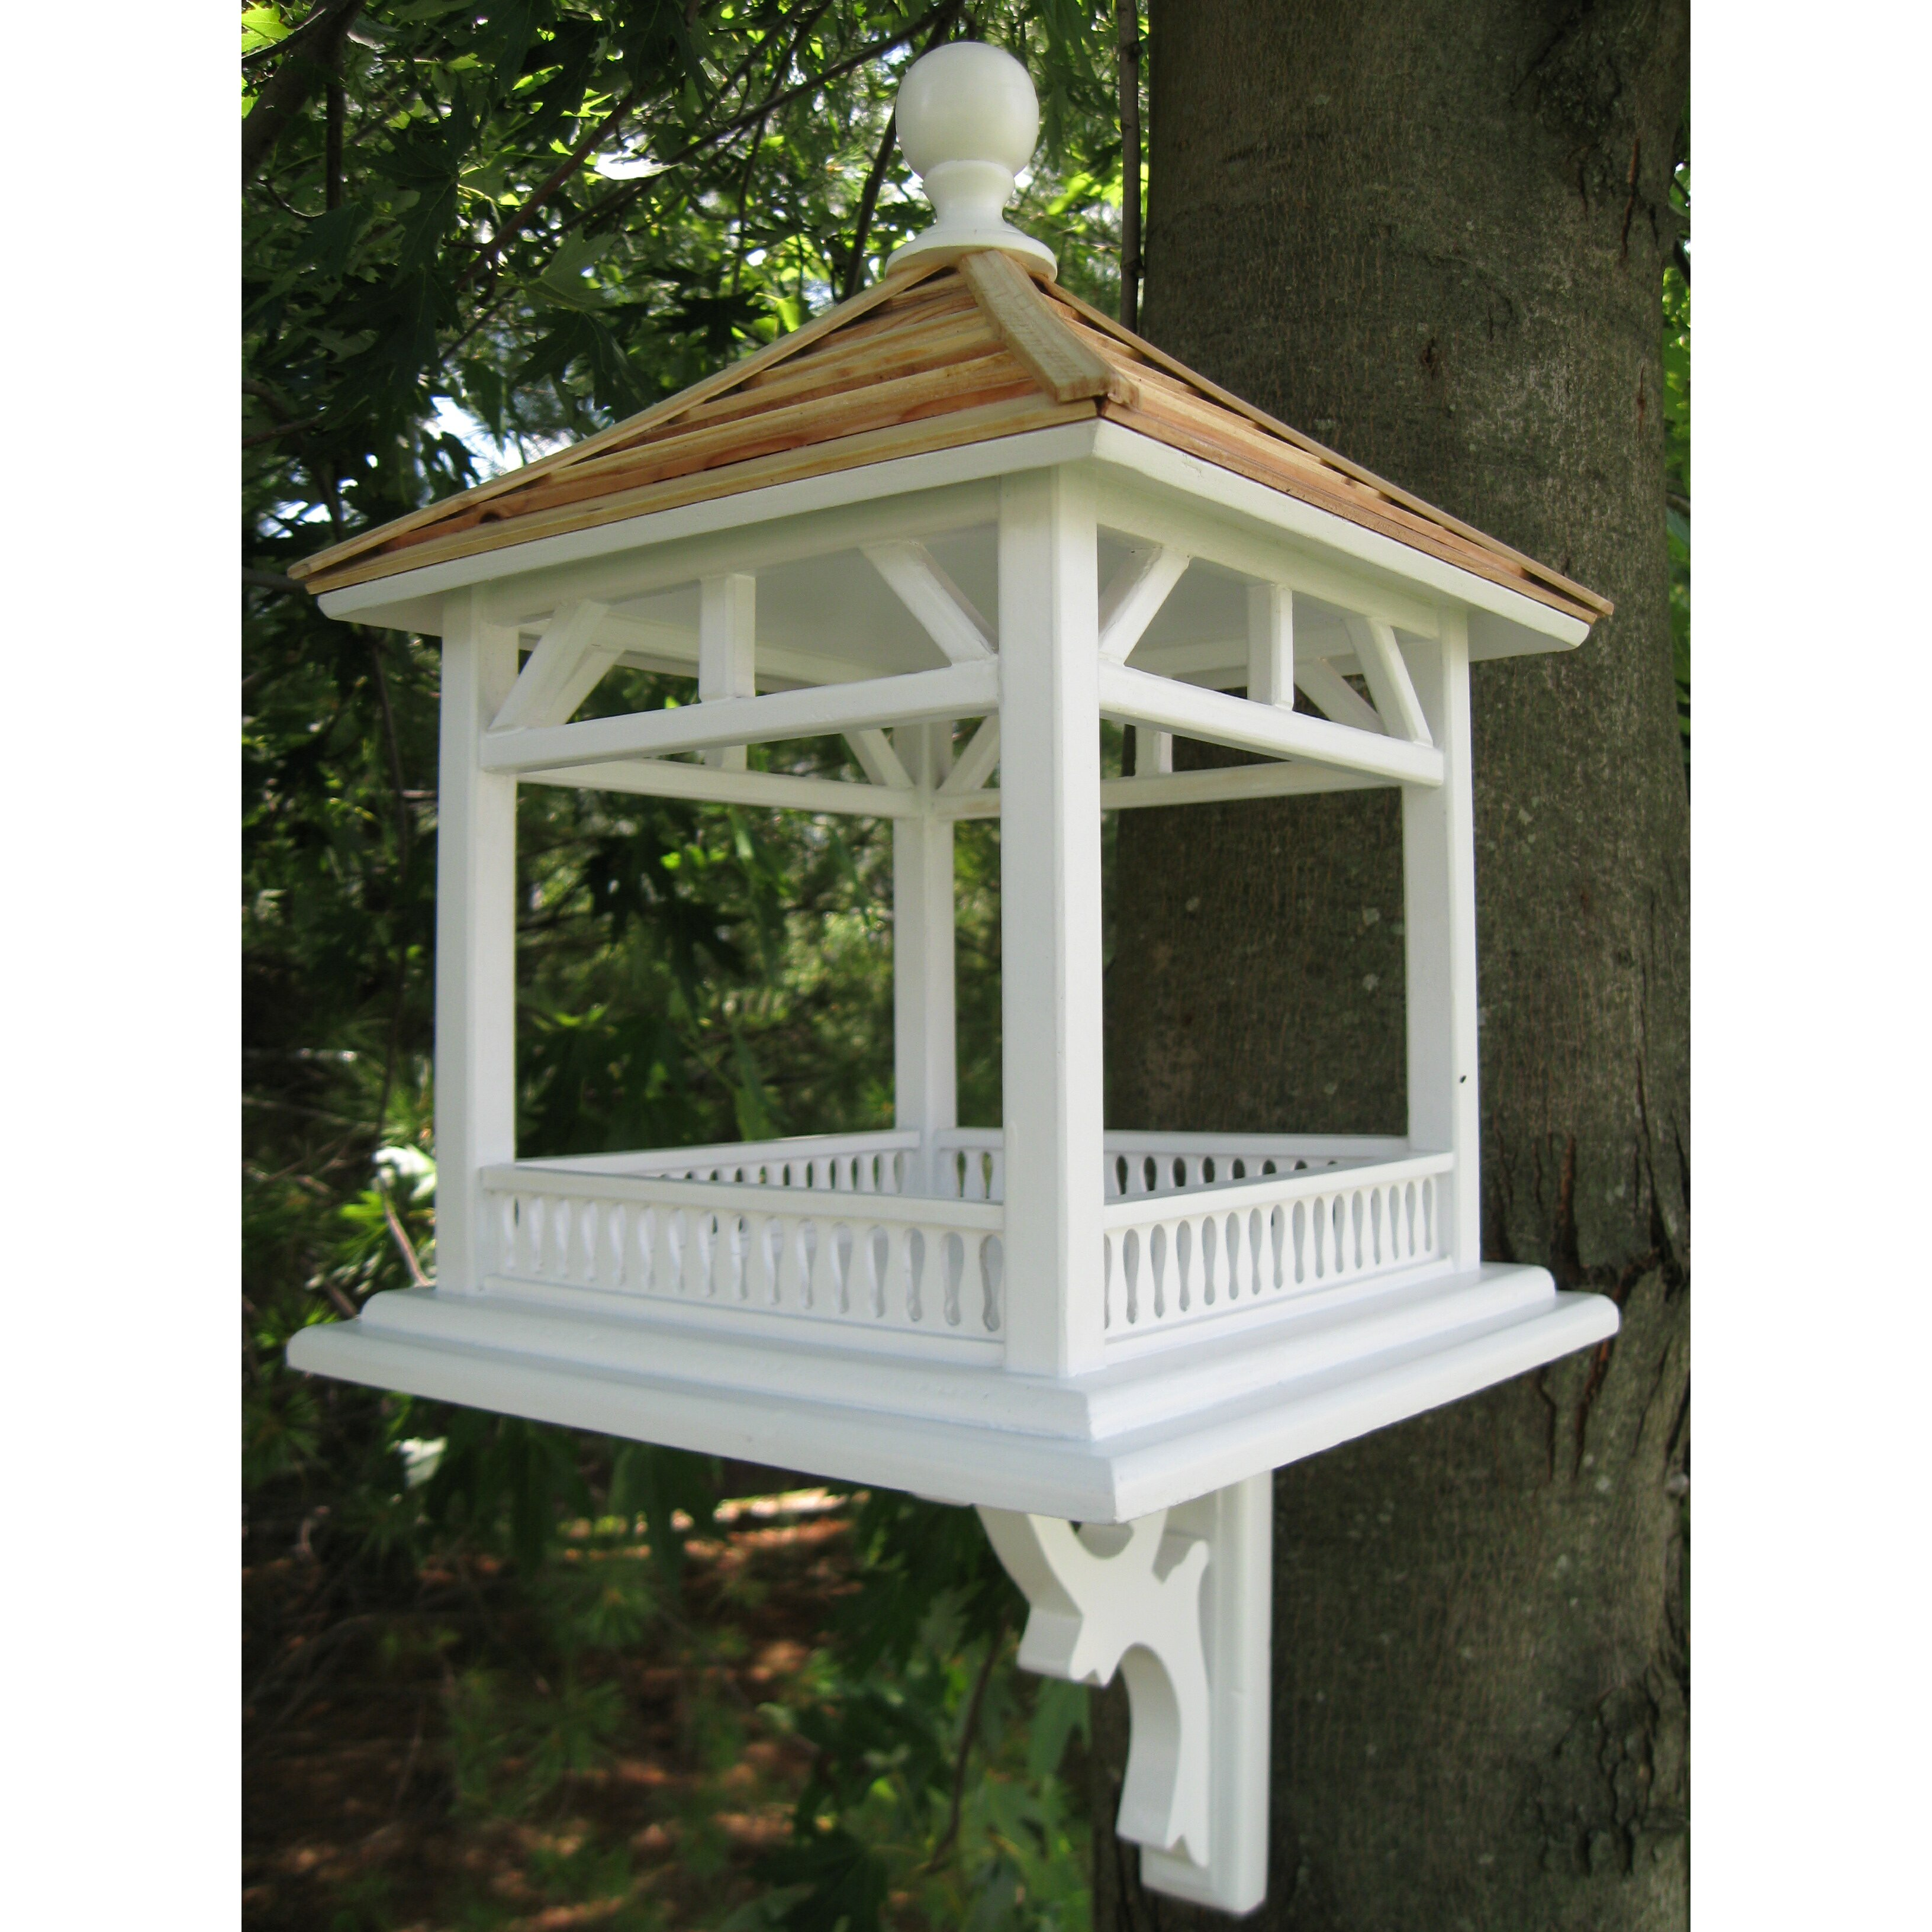 Home bazaar classic series dream house gazebo bird feeder for Classic homes reviews